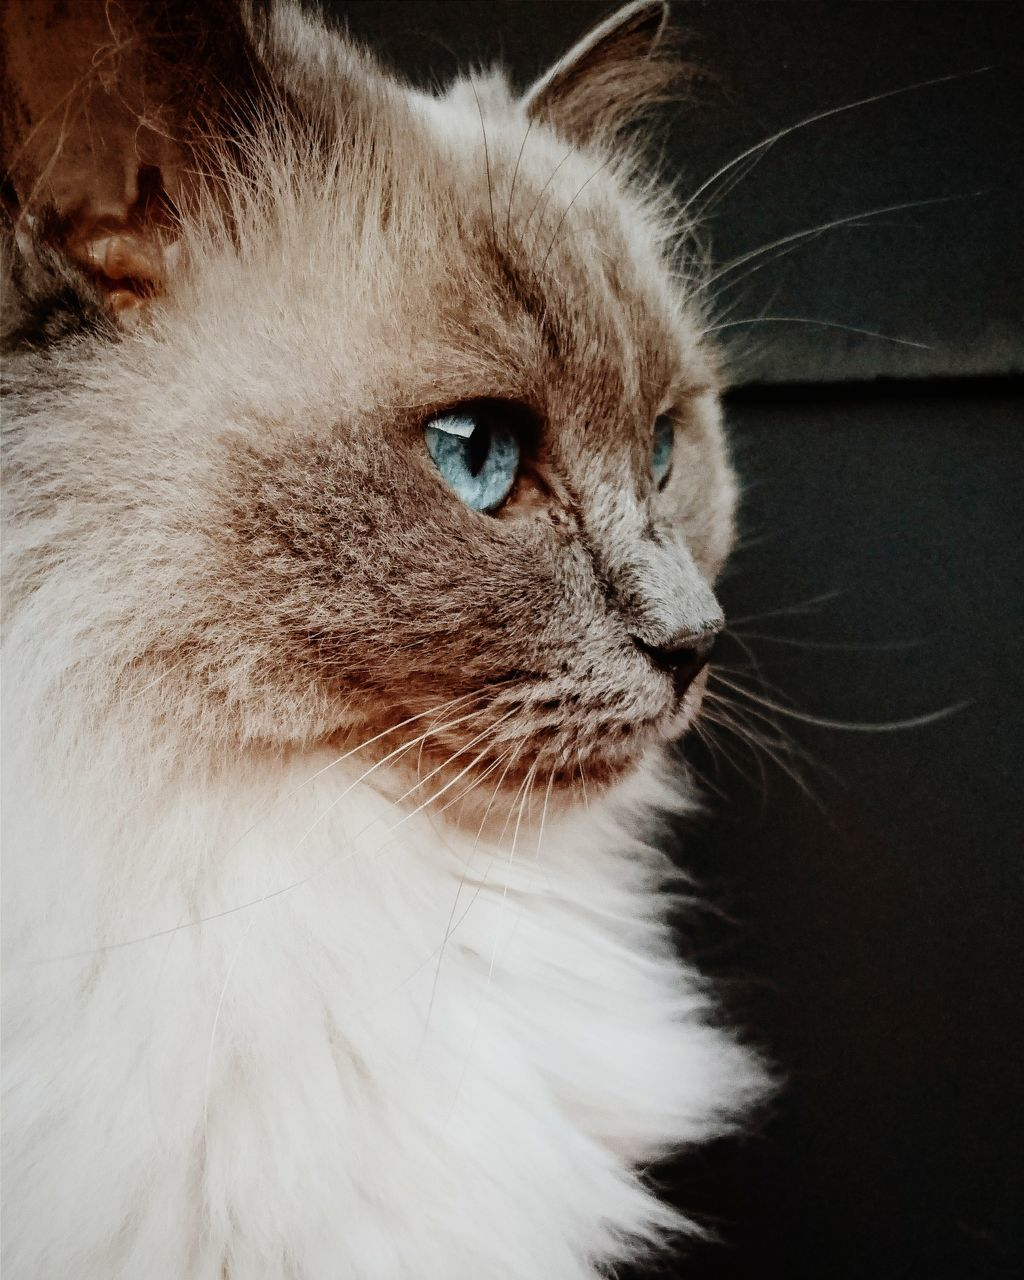 domestic cat, pets, feline, domestic animals, one animal, whisker, animal themes, mammal, cat, indoors, close-up, persian cat, no people, day